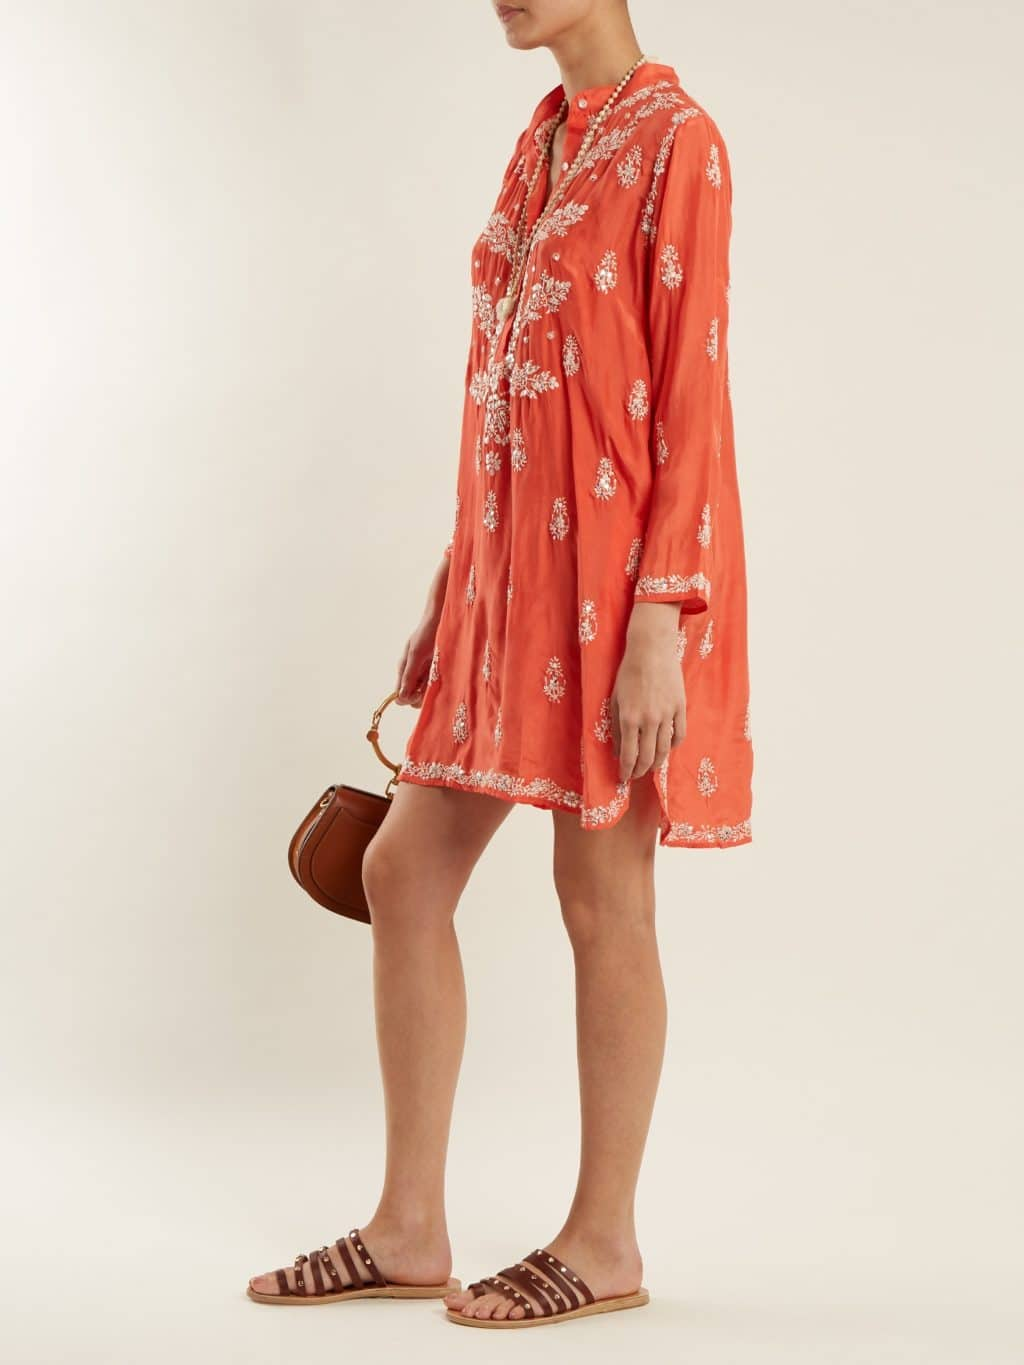 Juliet Dunn Floral Embroidered Silk Coral Red Shirtdress We Select